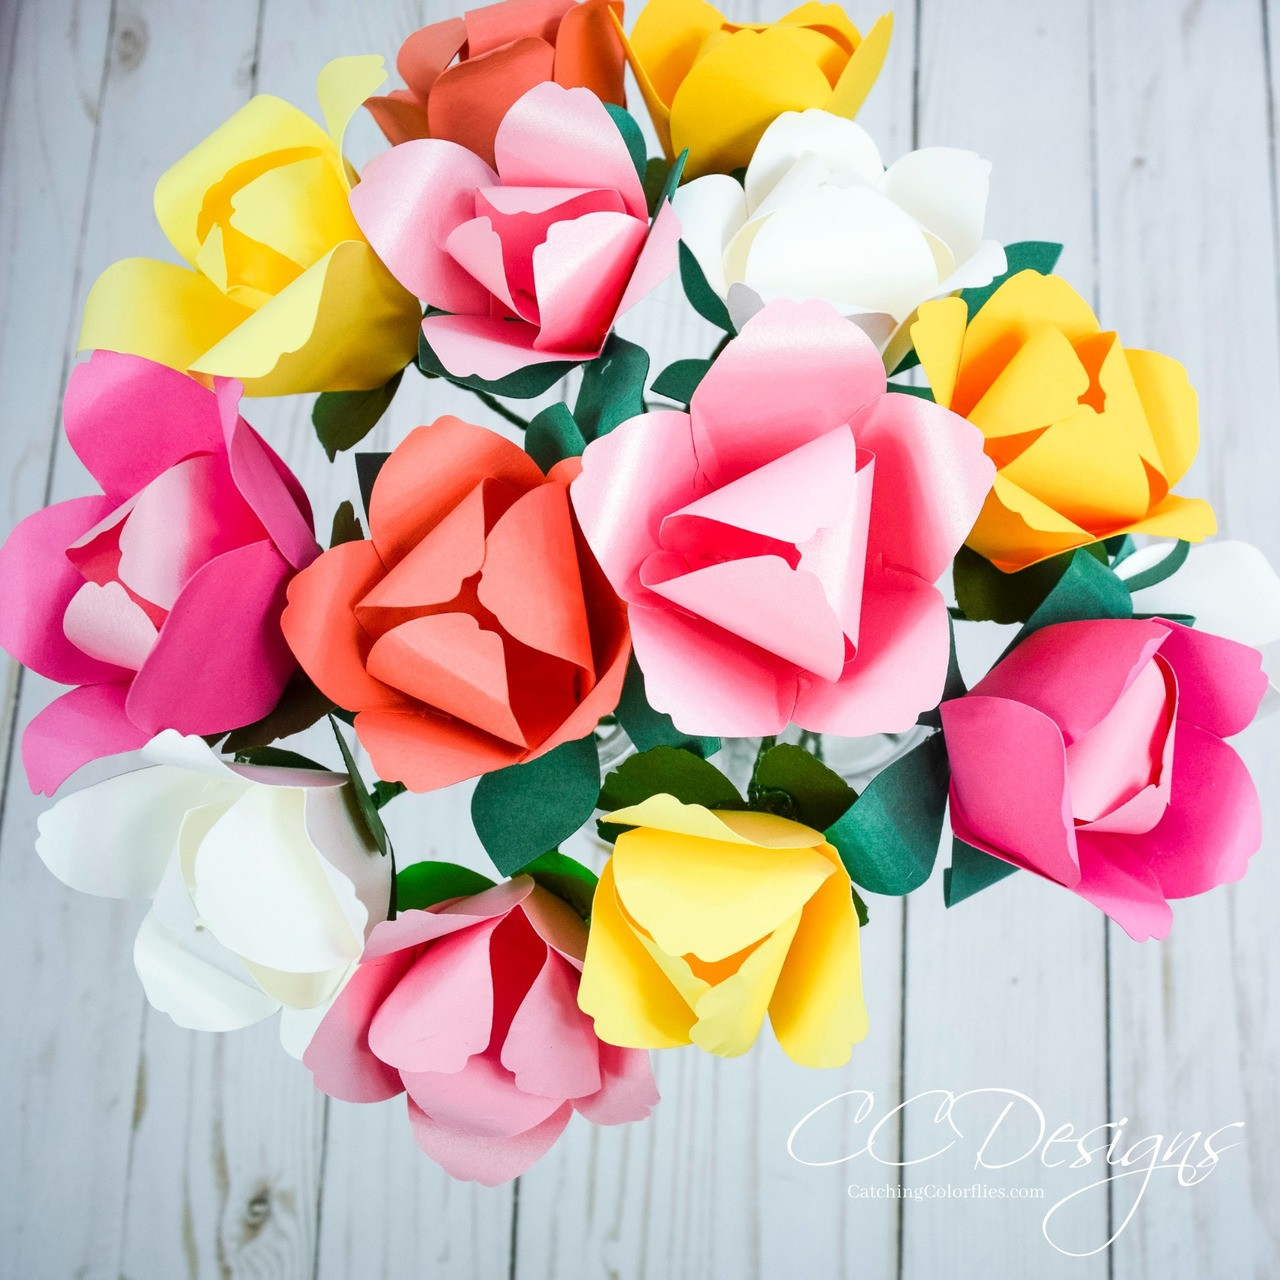 Tulip Paper Flower Templates Small Easter Tulip Catching Colorflies